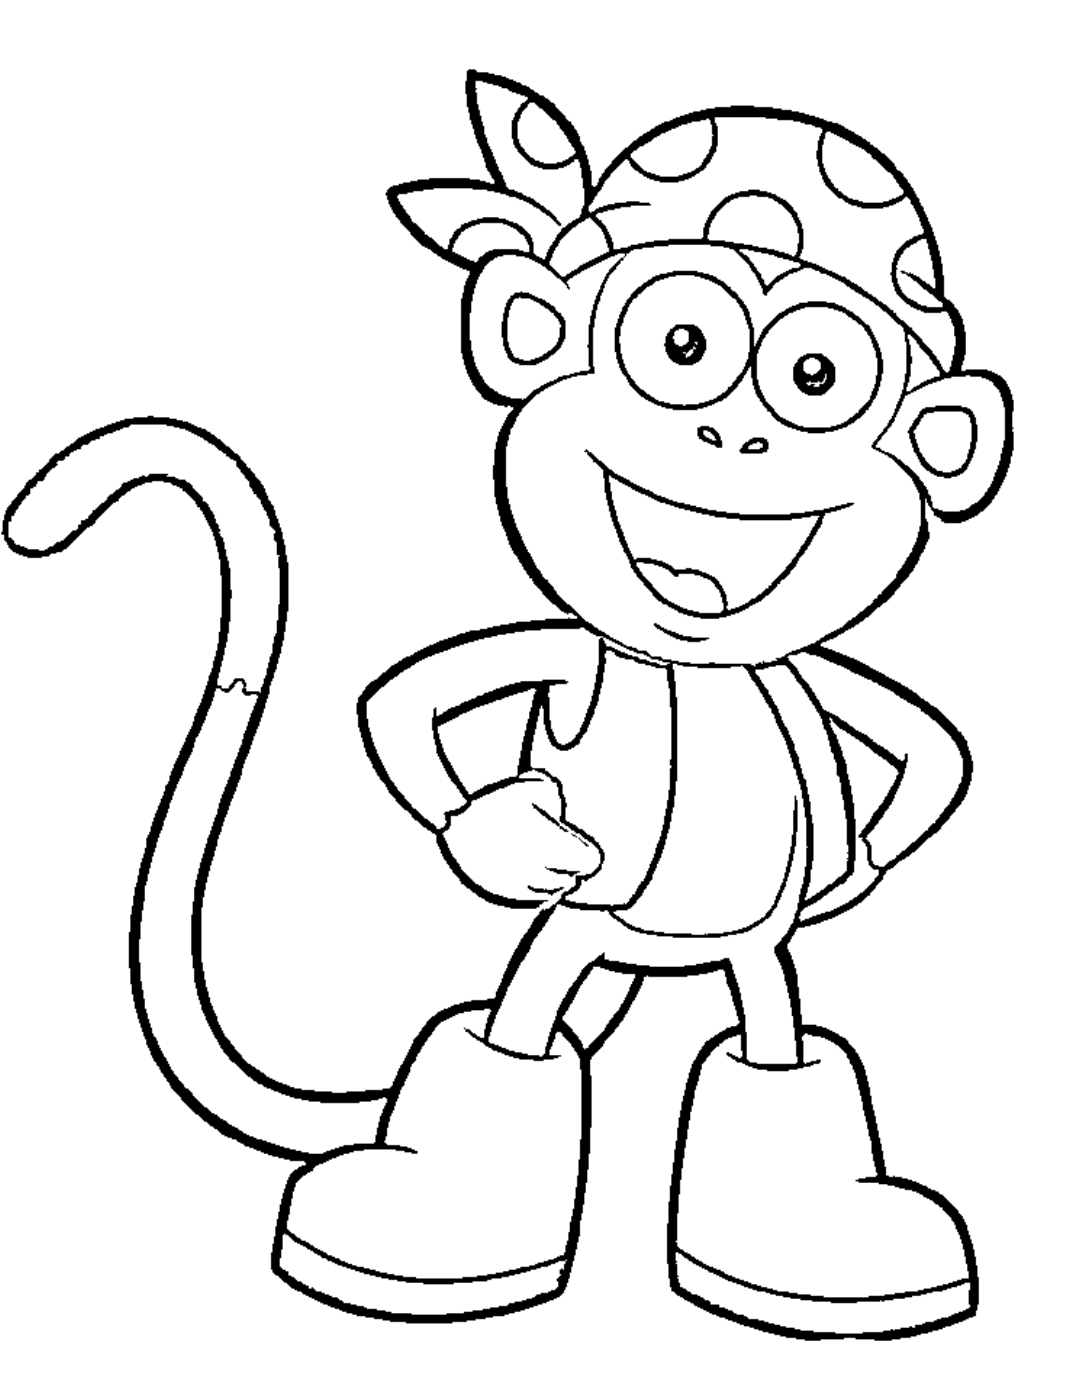 Printable Cartoon Characters Coloring Pages